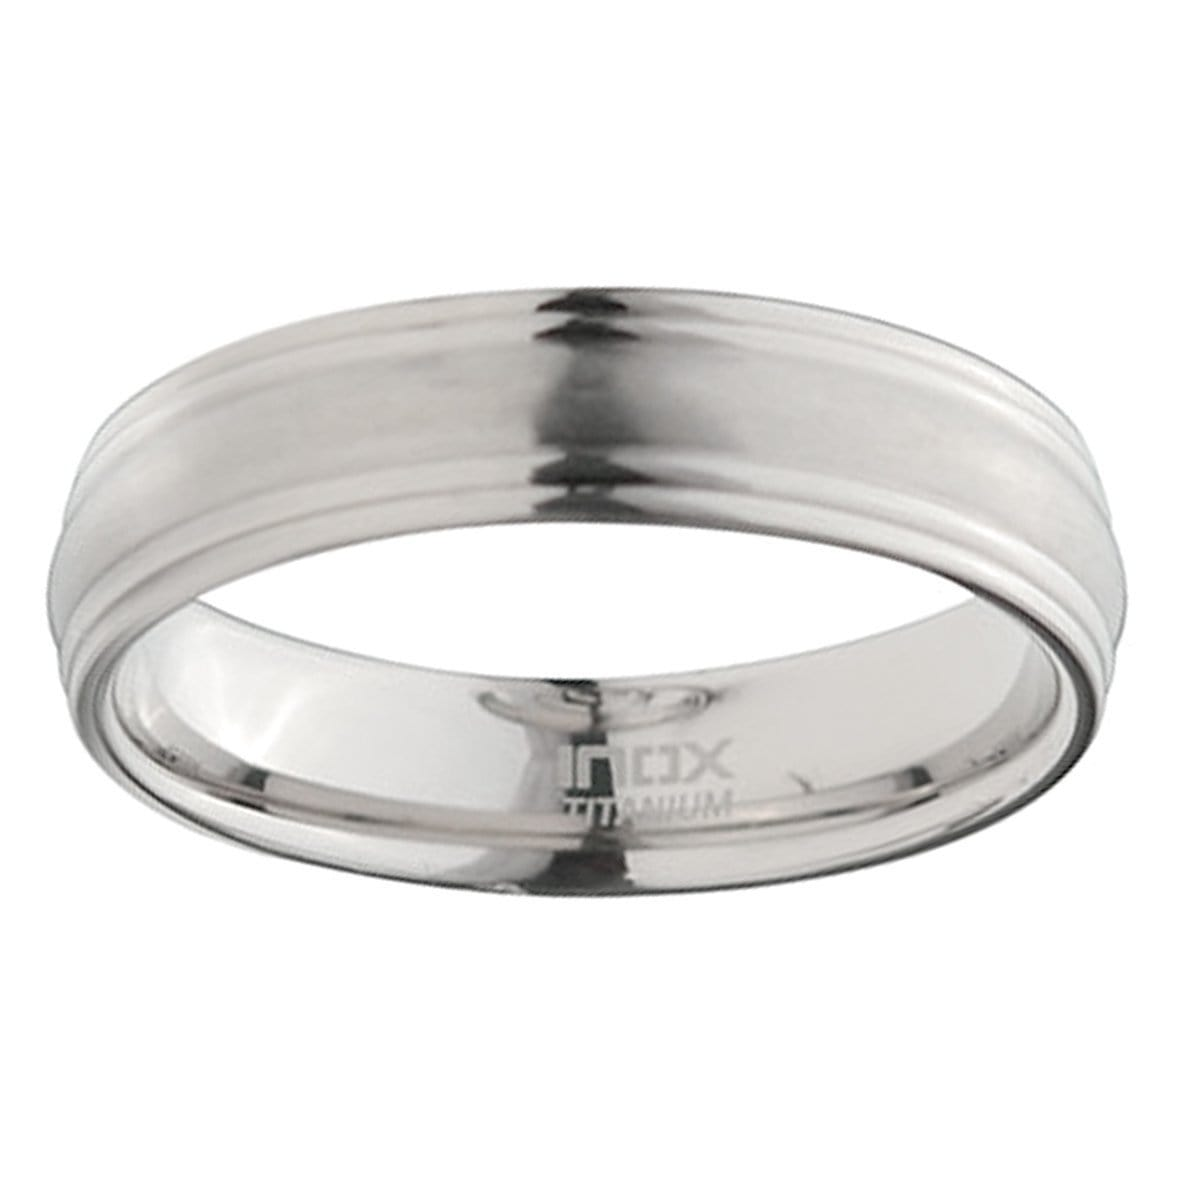 Silver Titanium 6mm Matt and Polished Groove Edge Band Rings